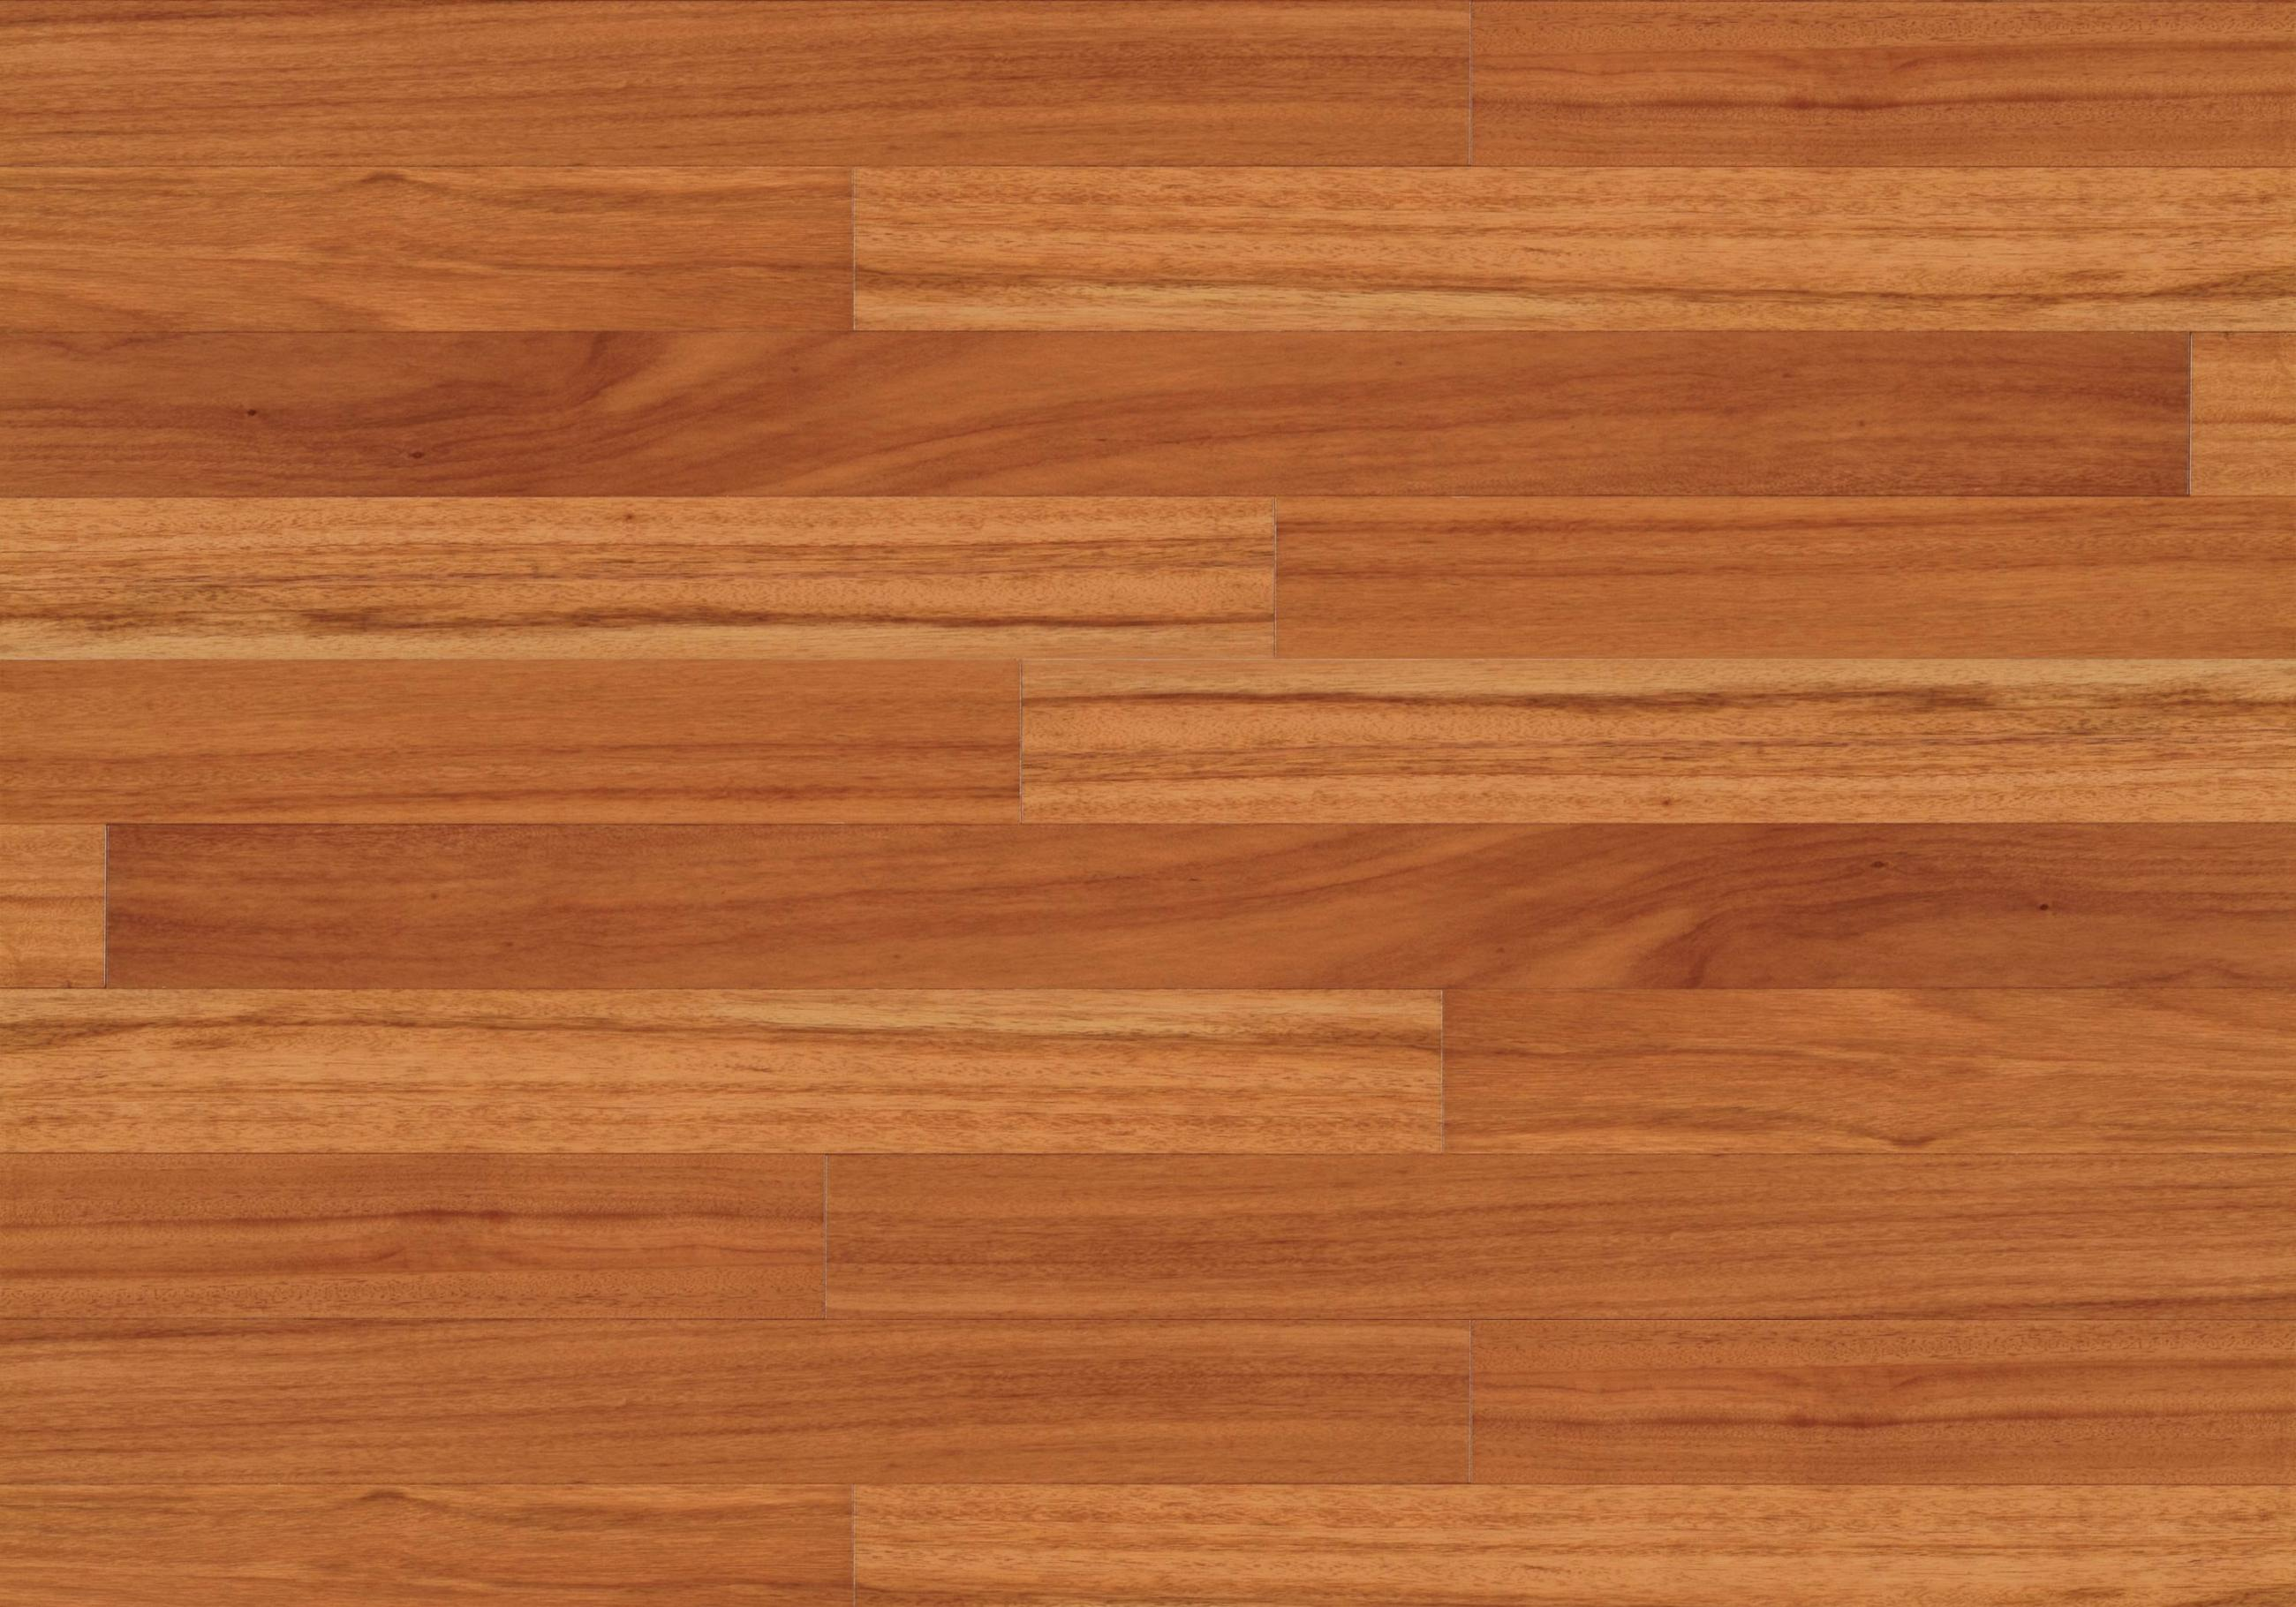 Engineered hardwood flooring specialty store in anaheim ca for Wood flooring natural